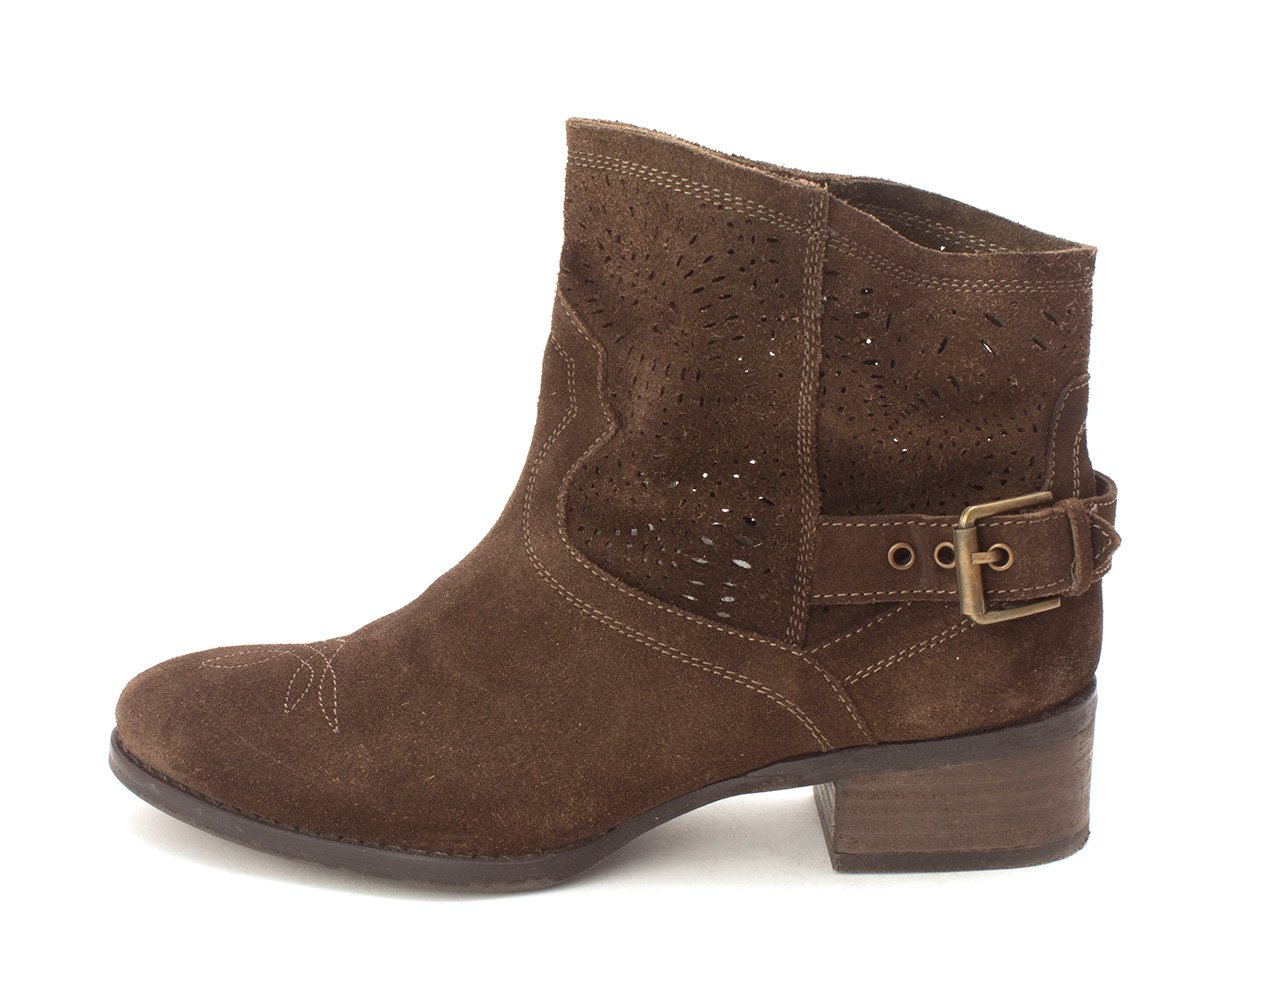 Naughty Monkey Womens Zoey Closed Toe Ankle Cowboy Boots B07D35775W 10 B(M) US|Brown